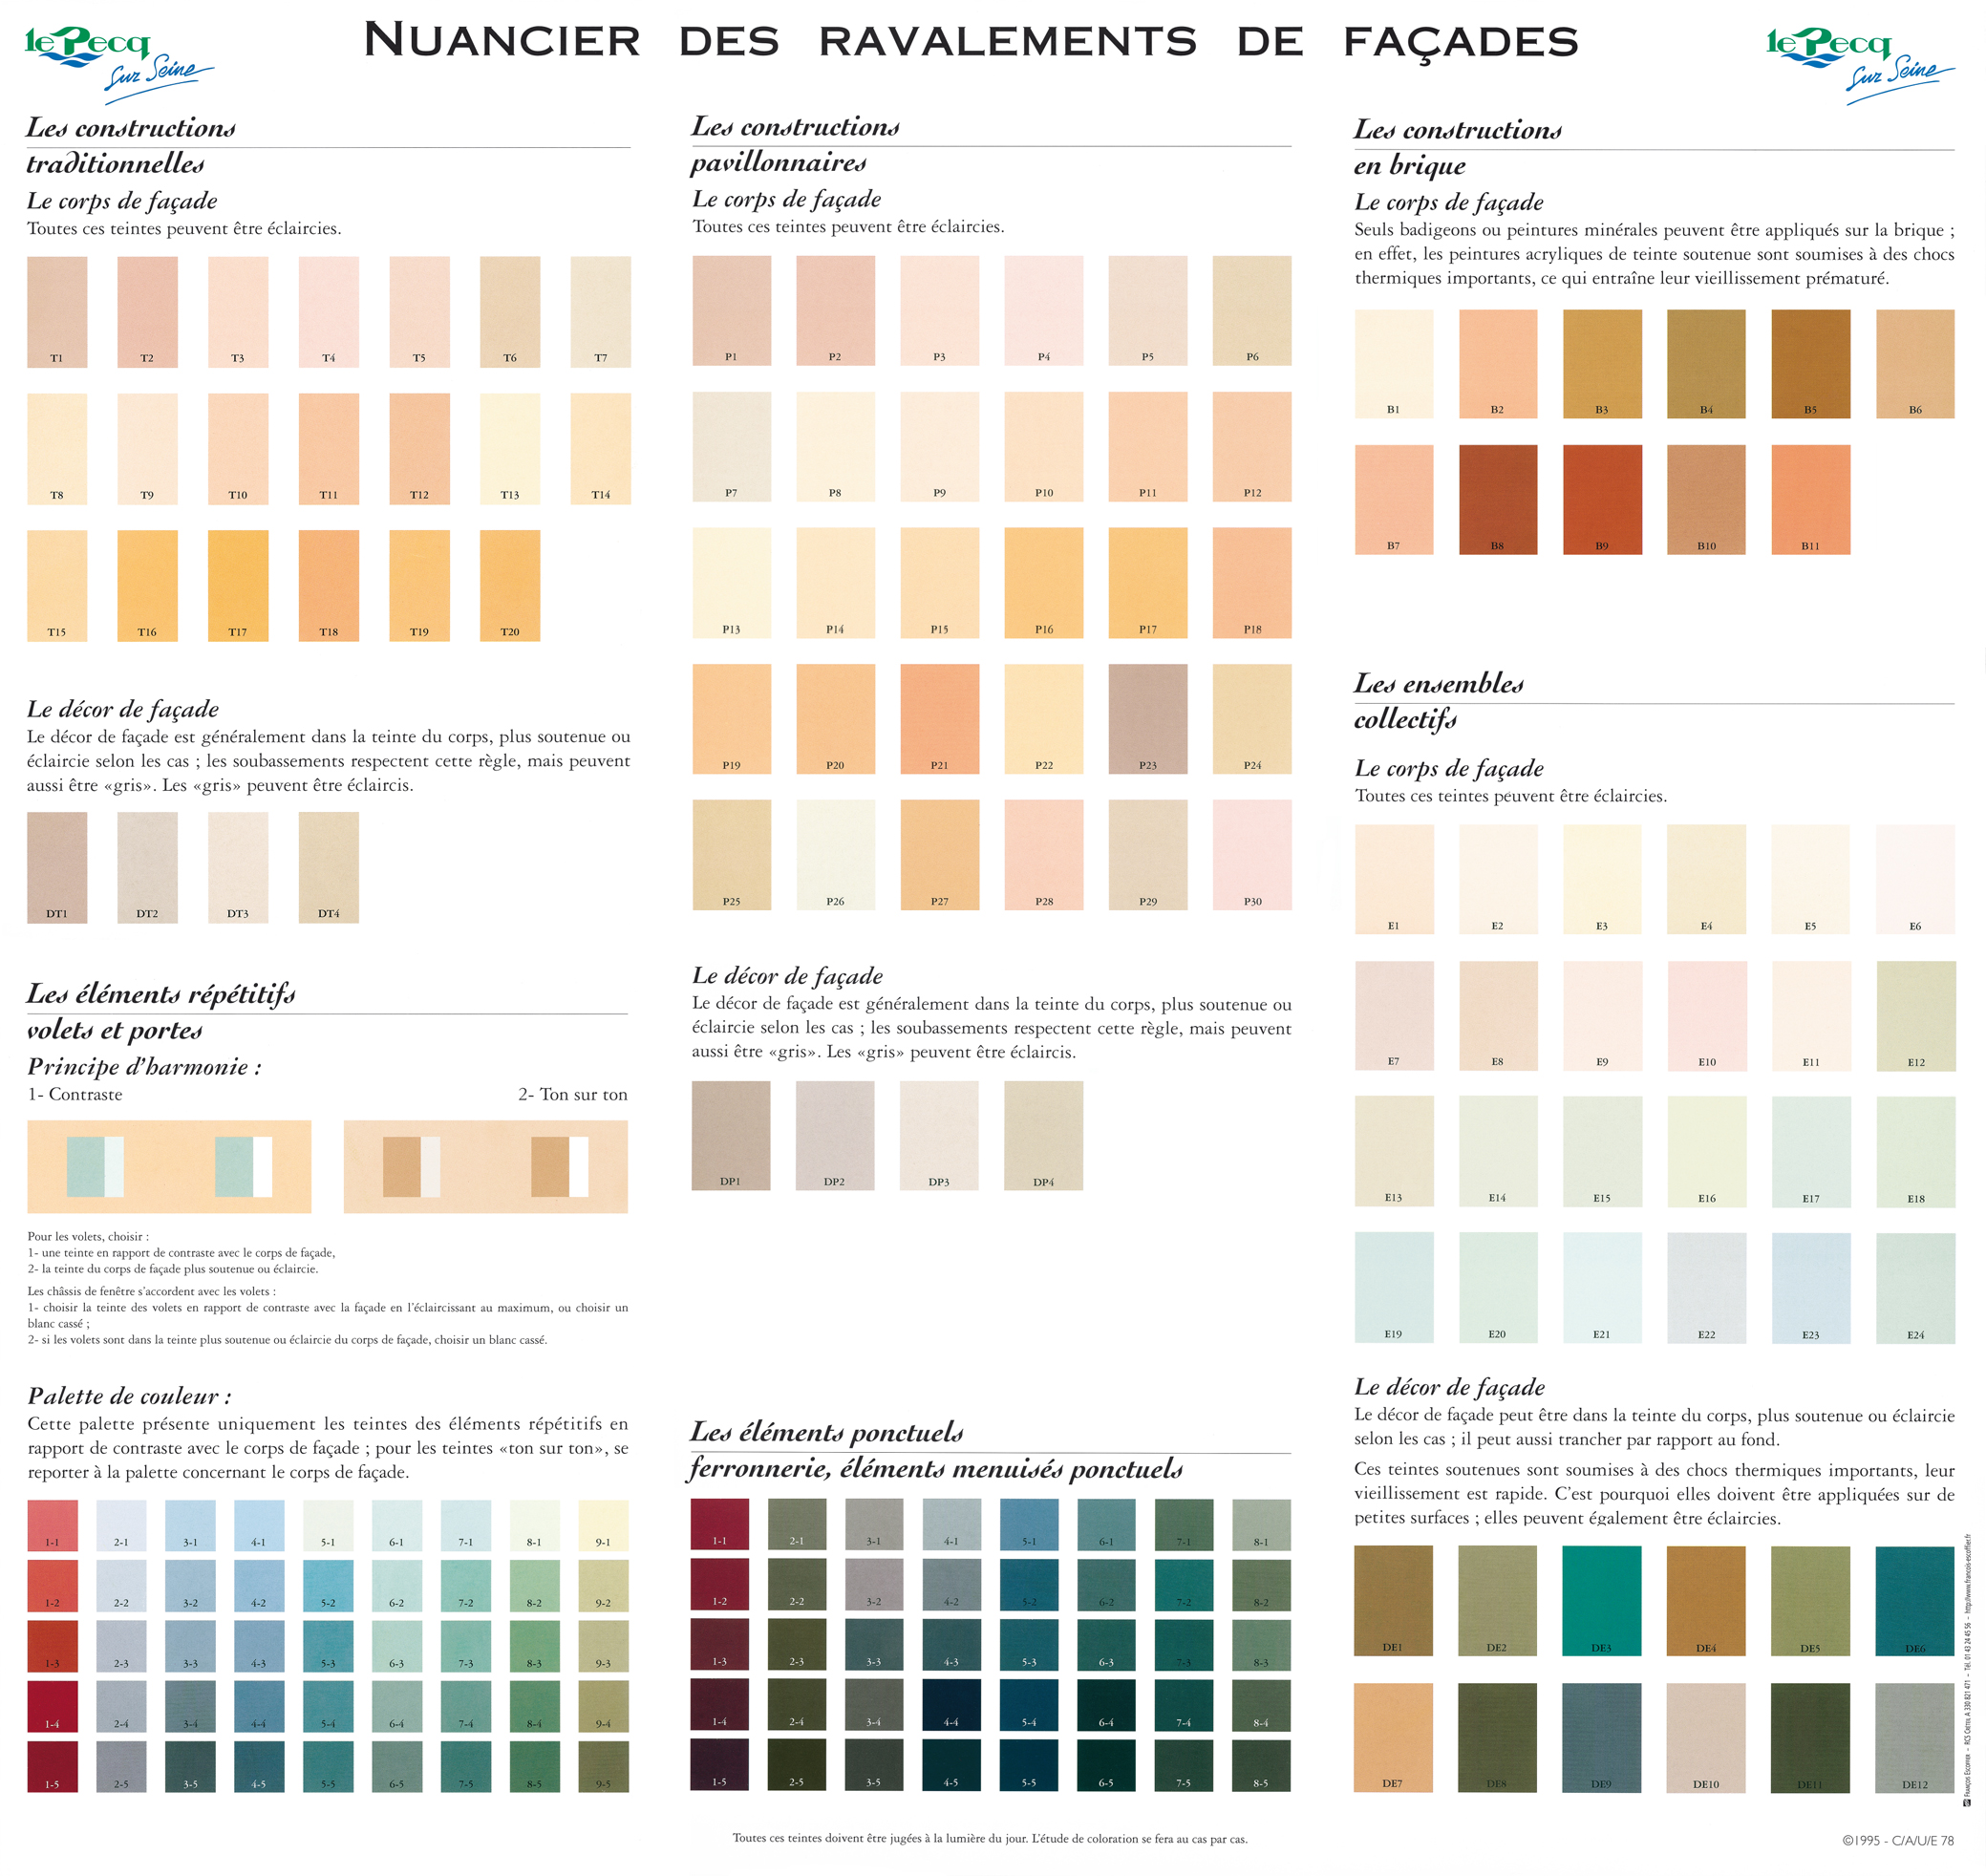 Ravalement le pecq for Nuancier couleur facade